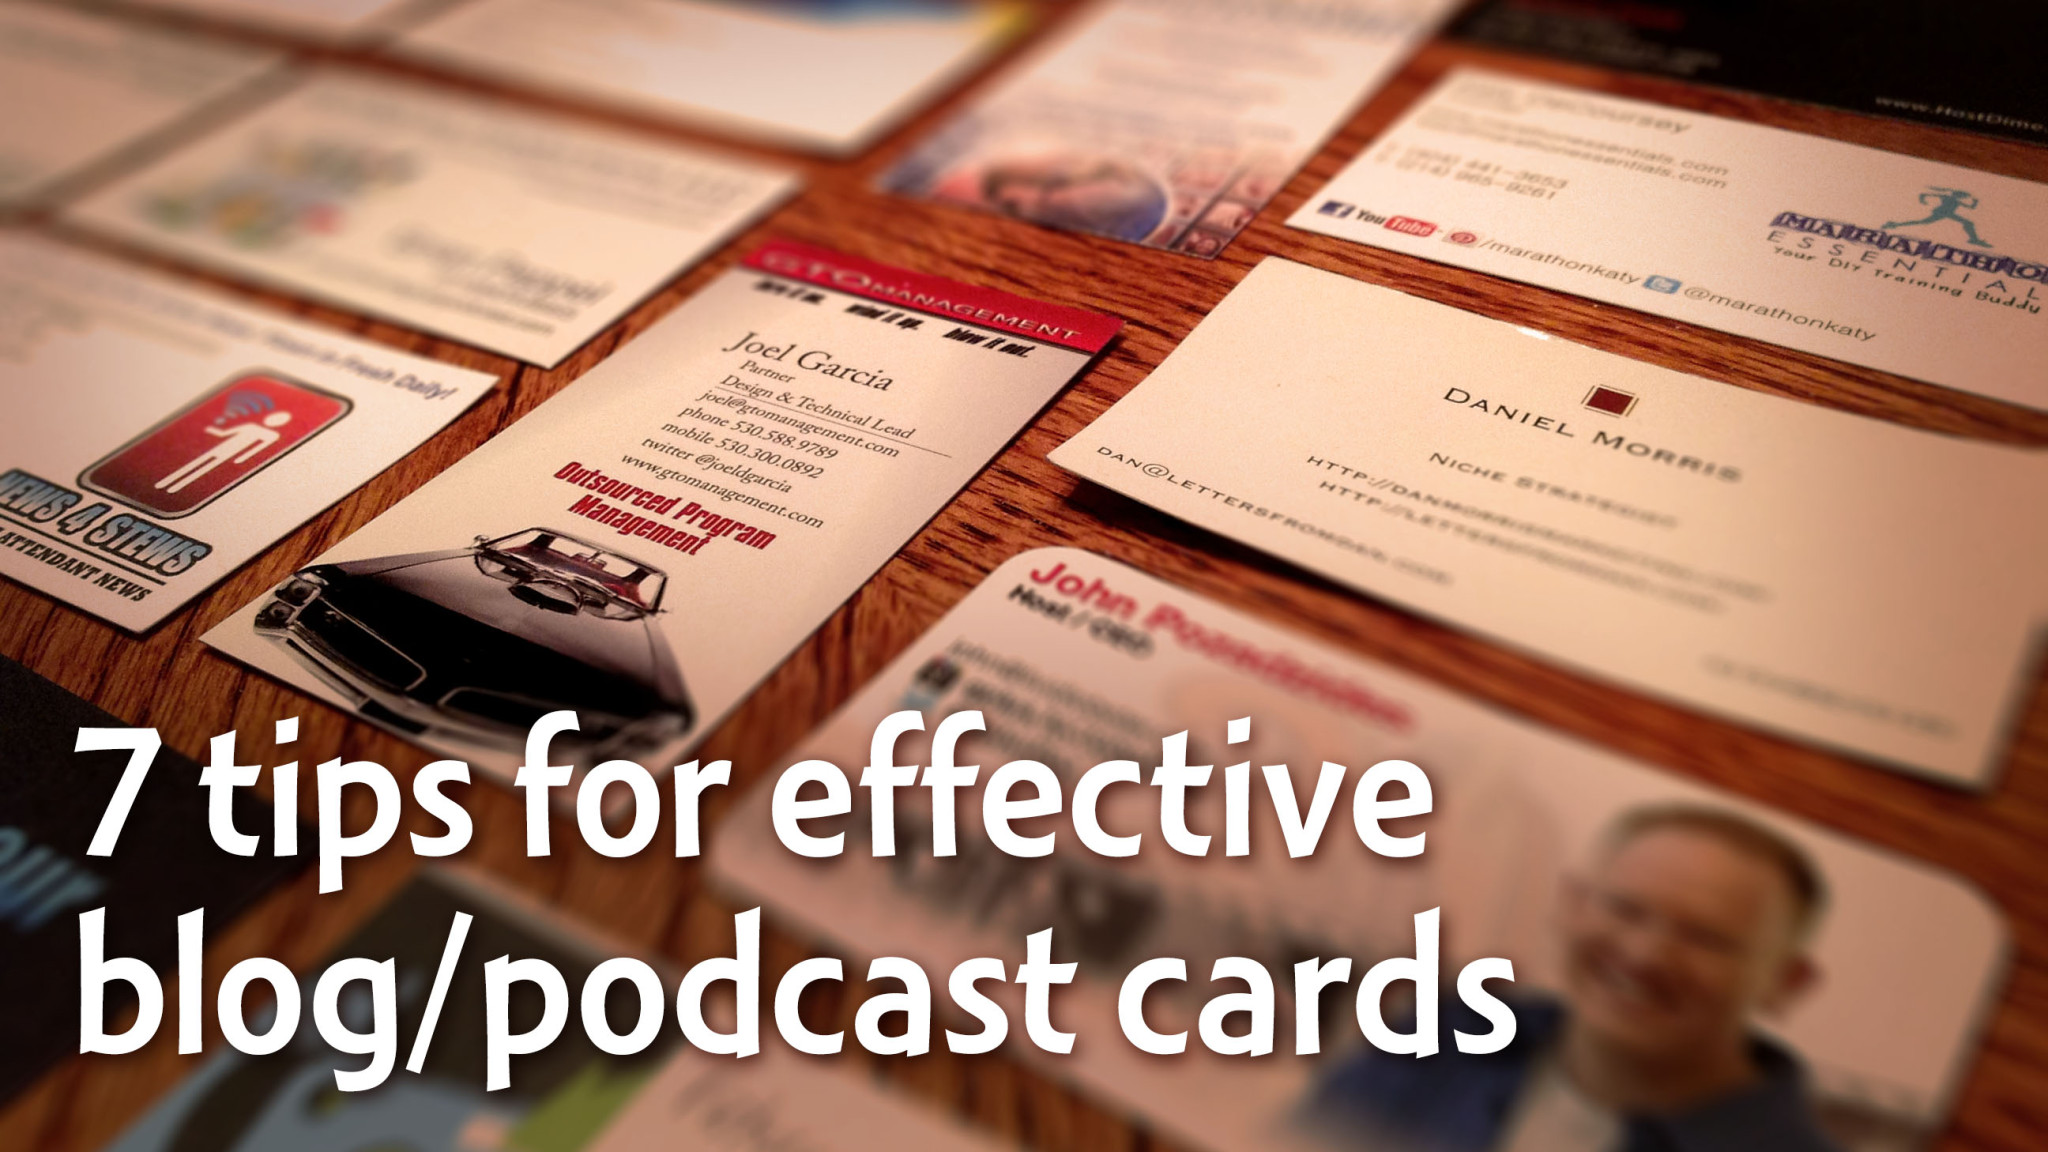 7 tips for effective blog/podcast cards